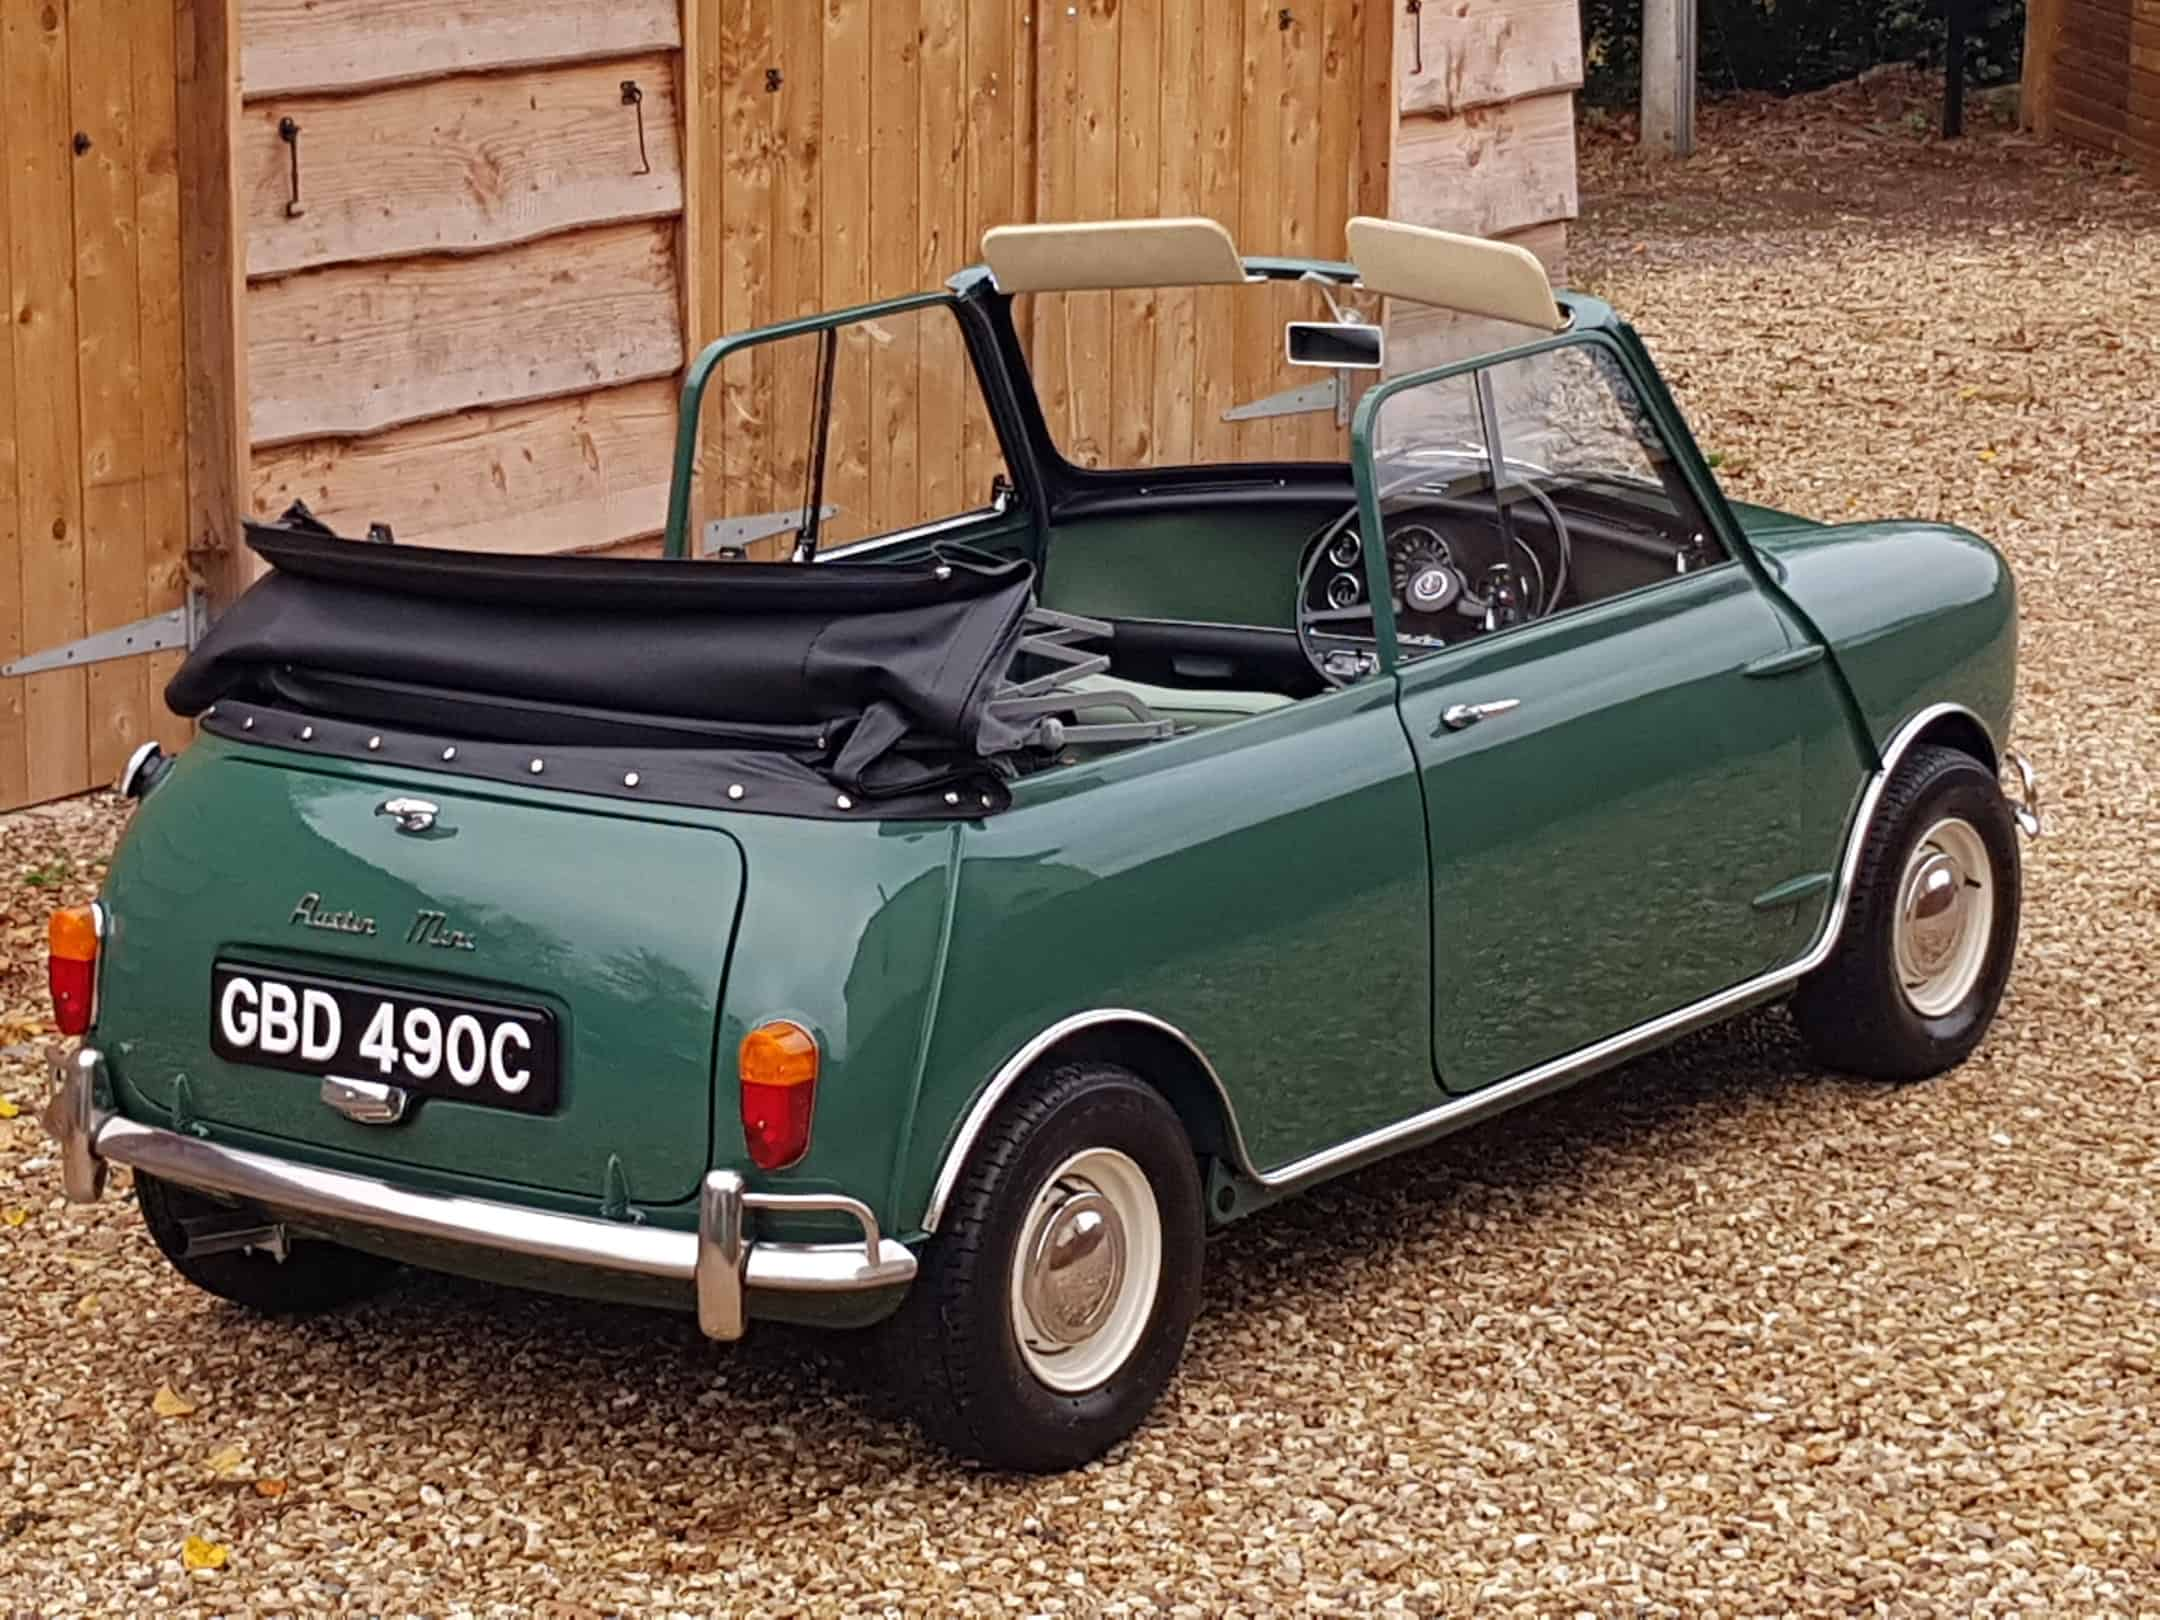 ** NOW SOLD ** Very Rare And Special 1965 Mini Crayford Convertible